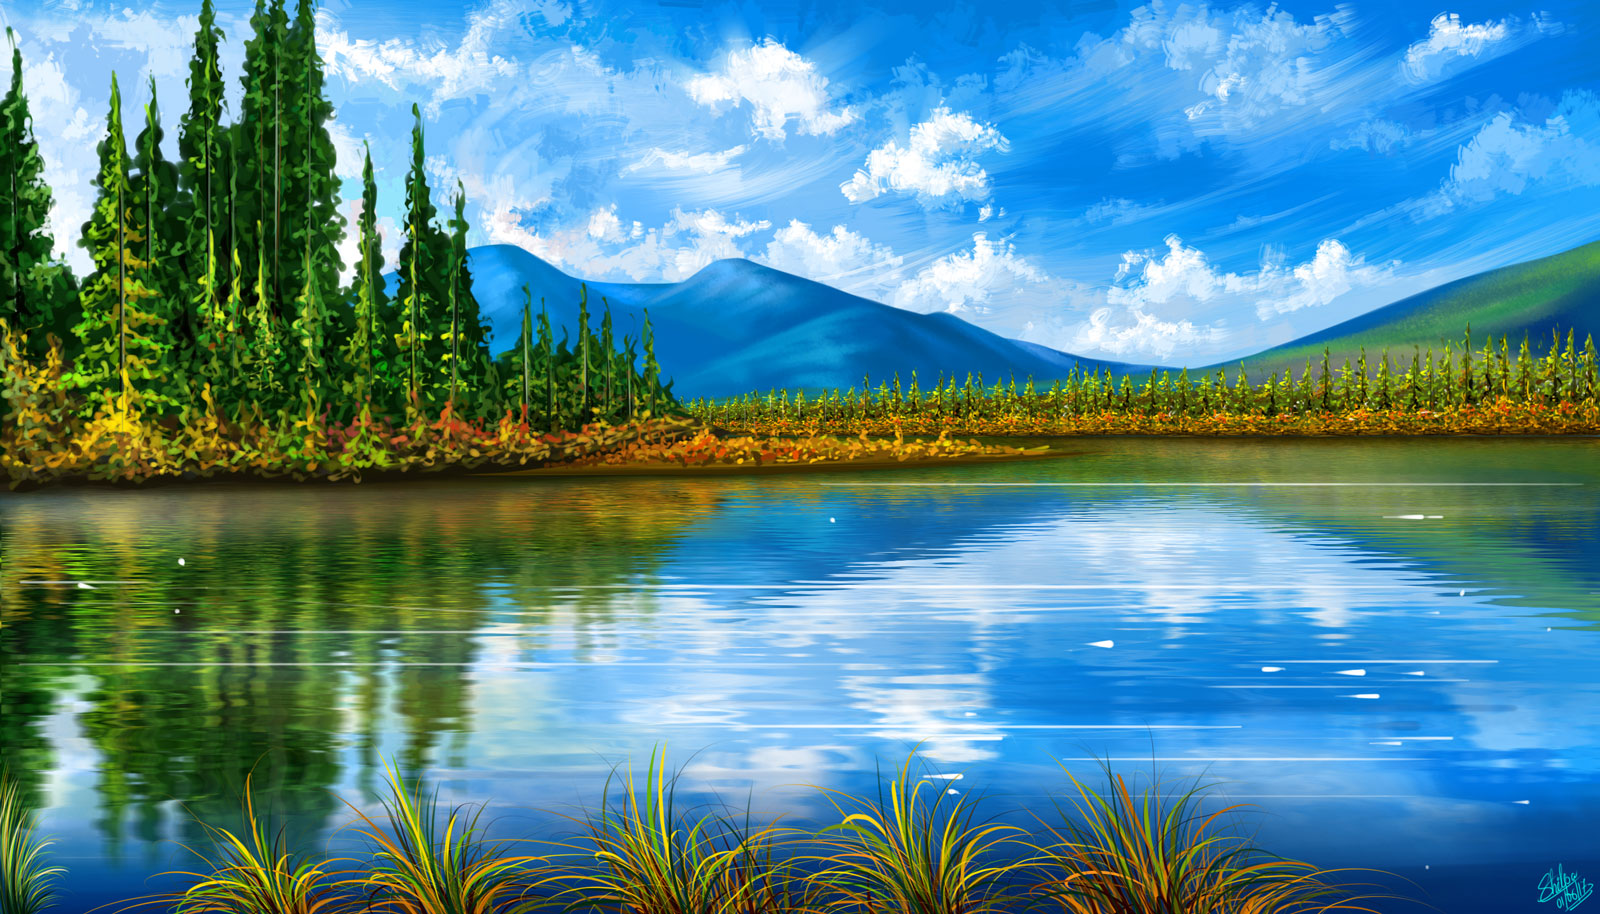 Shilpas art gallery nature and objects for these nature painting i took original reference and made a realistic digital paintingr all these painting ive used adobe photoshop and autodesk baditri Images